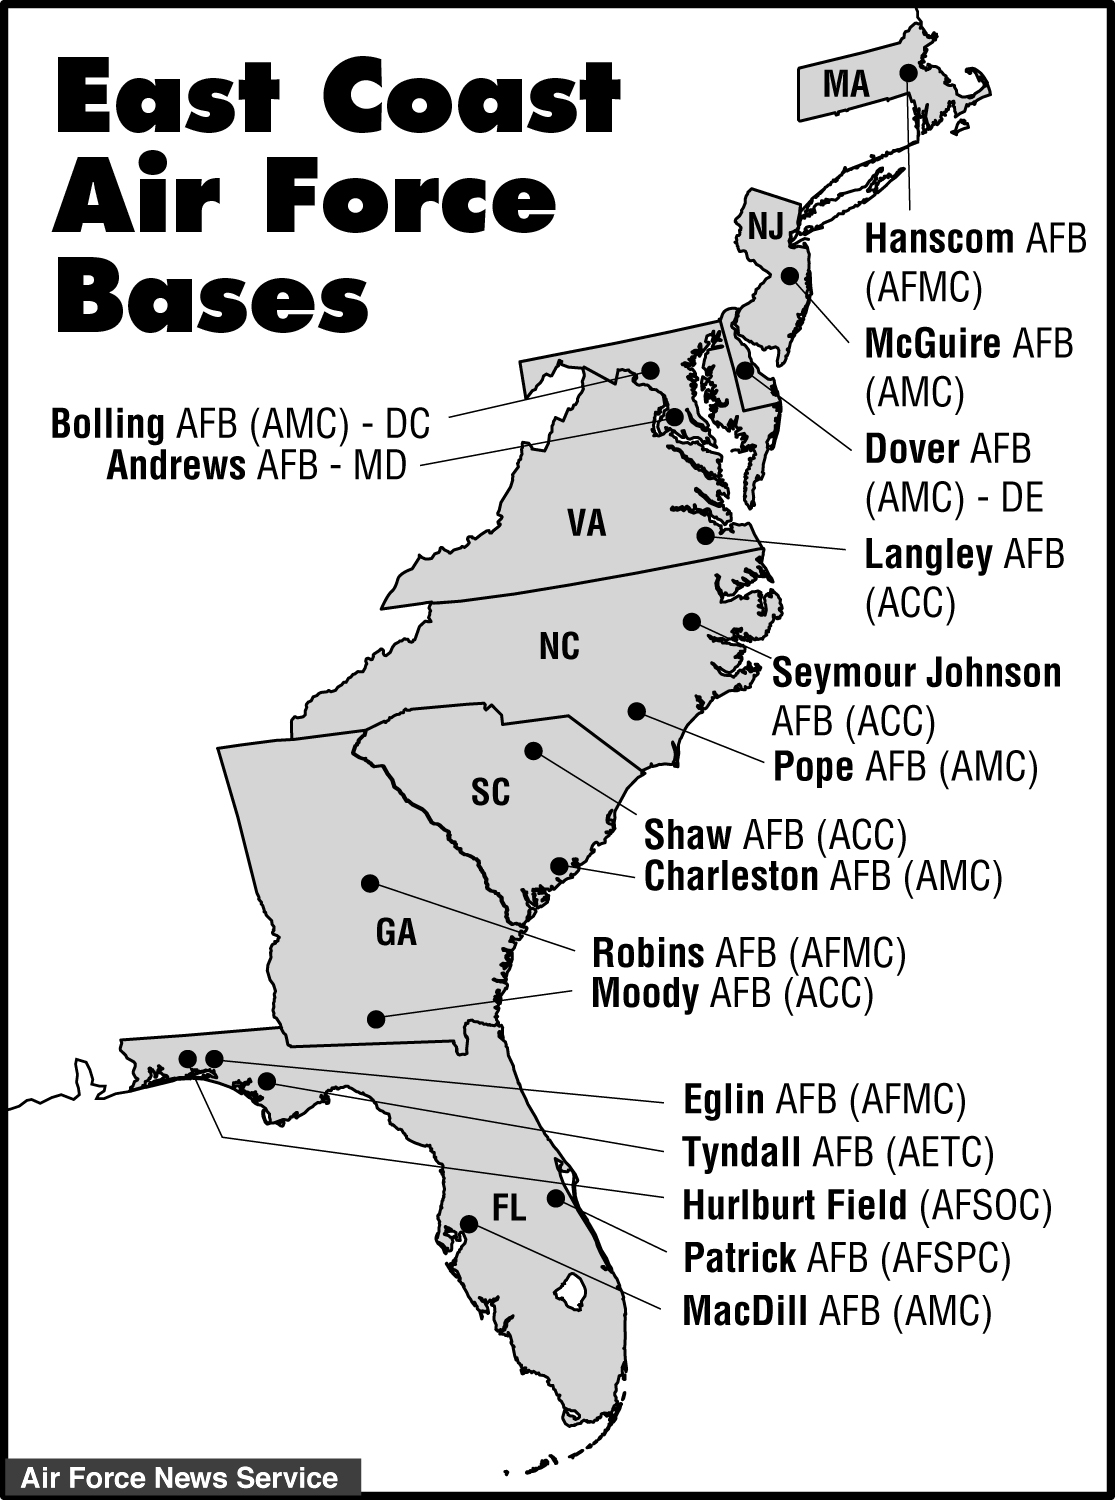 East Coast Air Force Bases